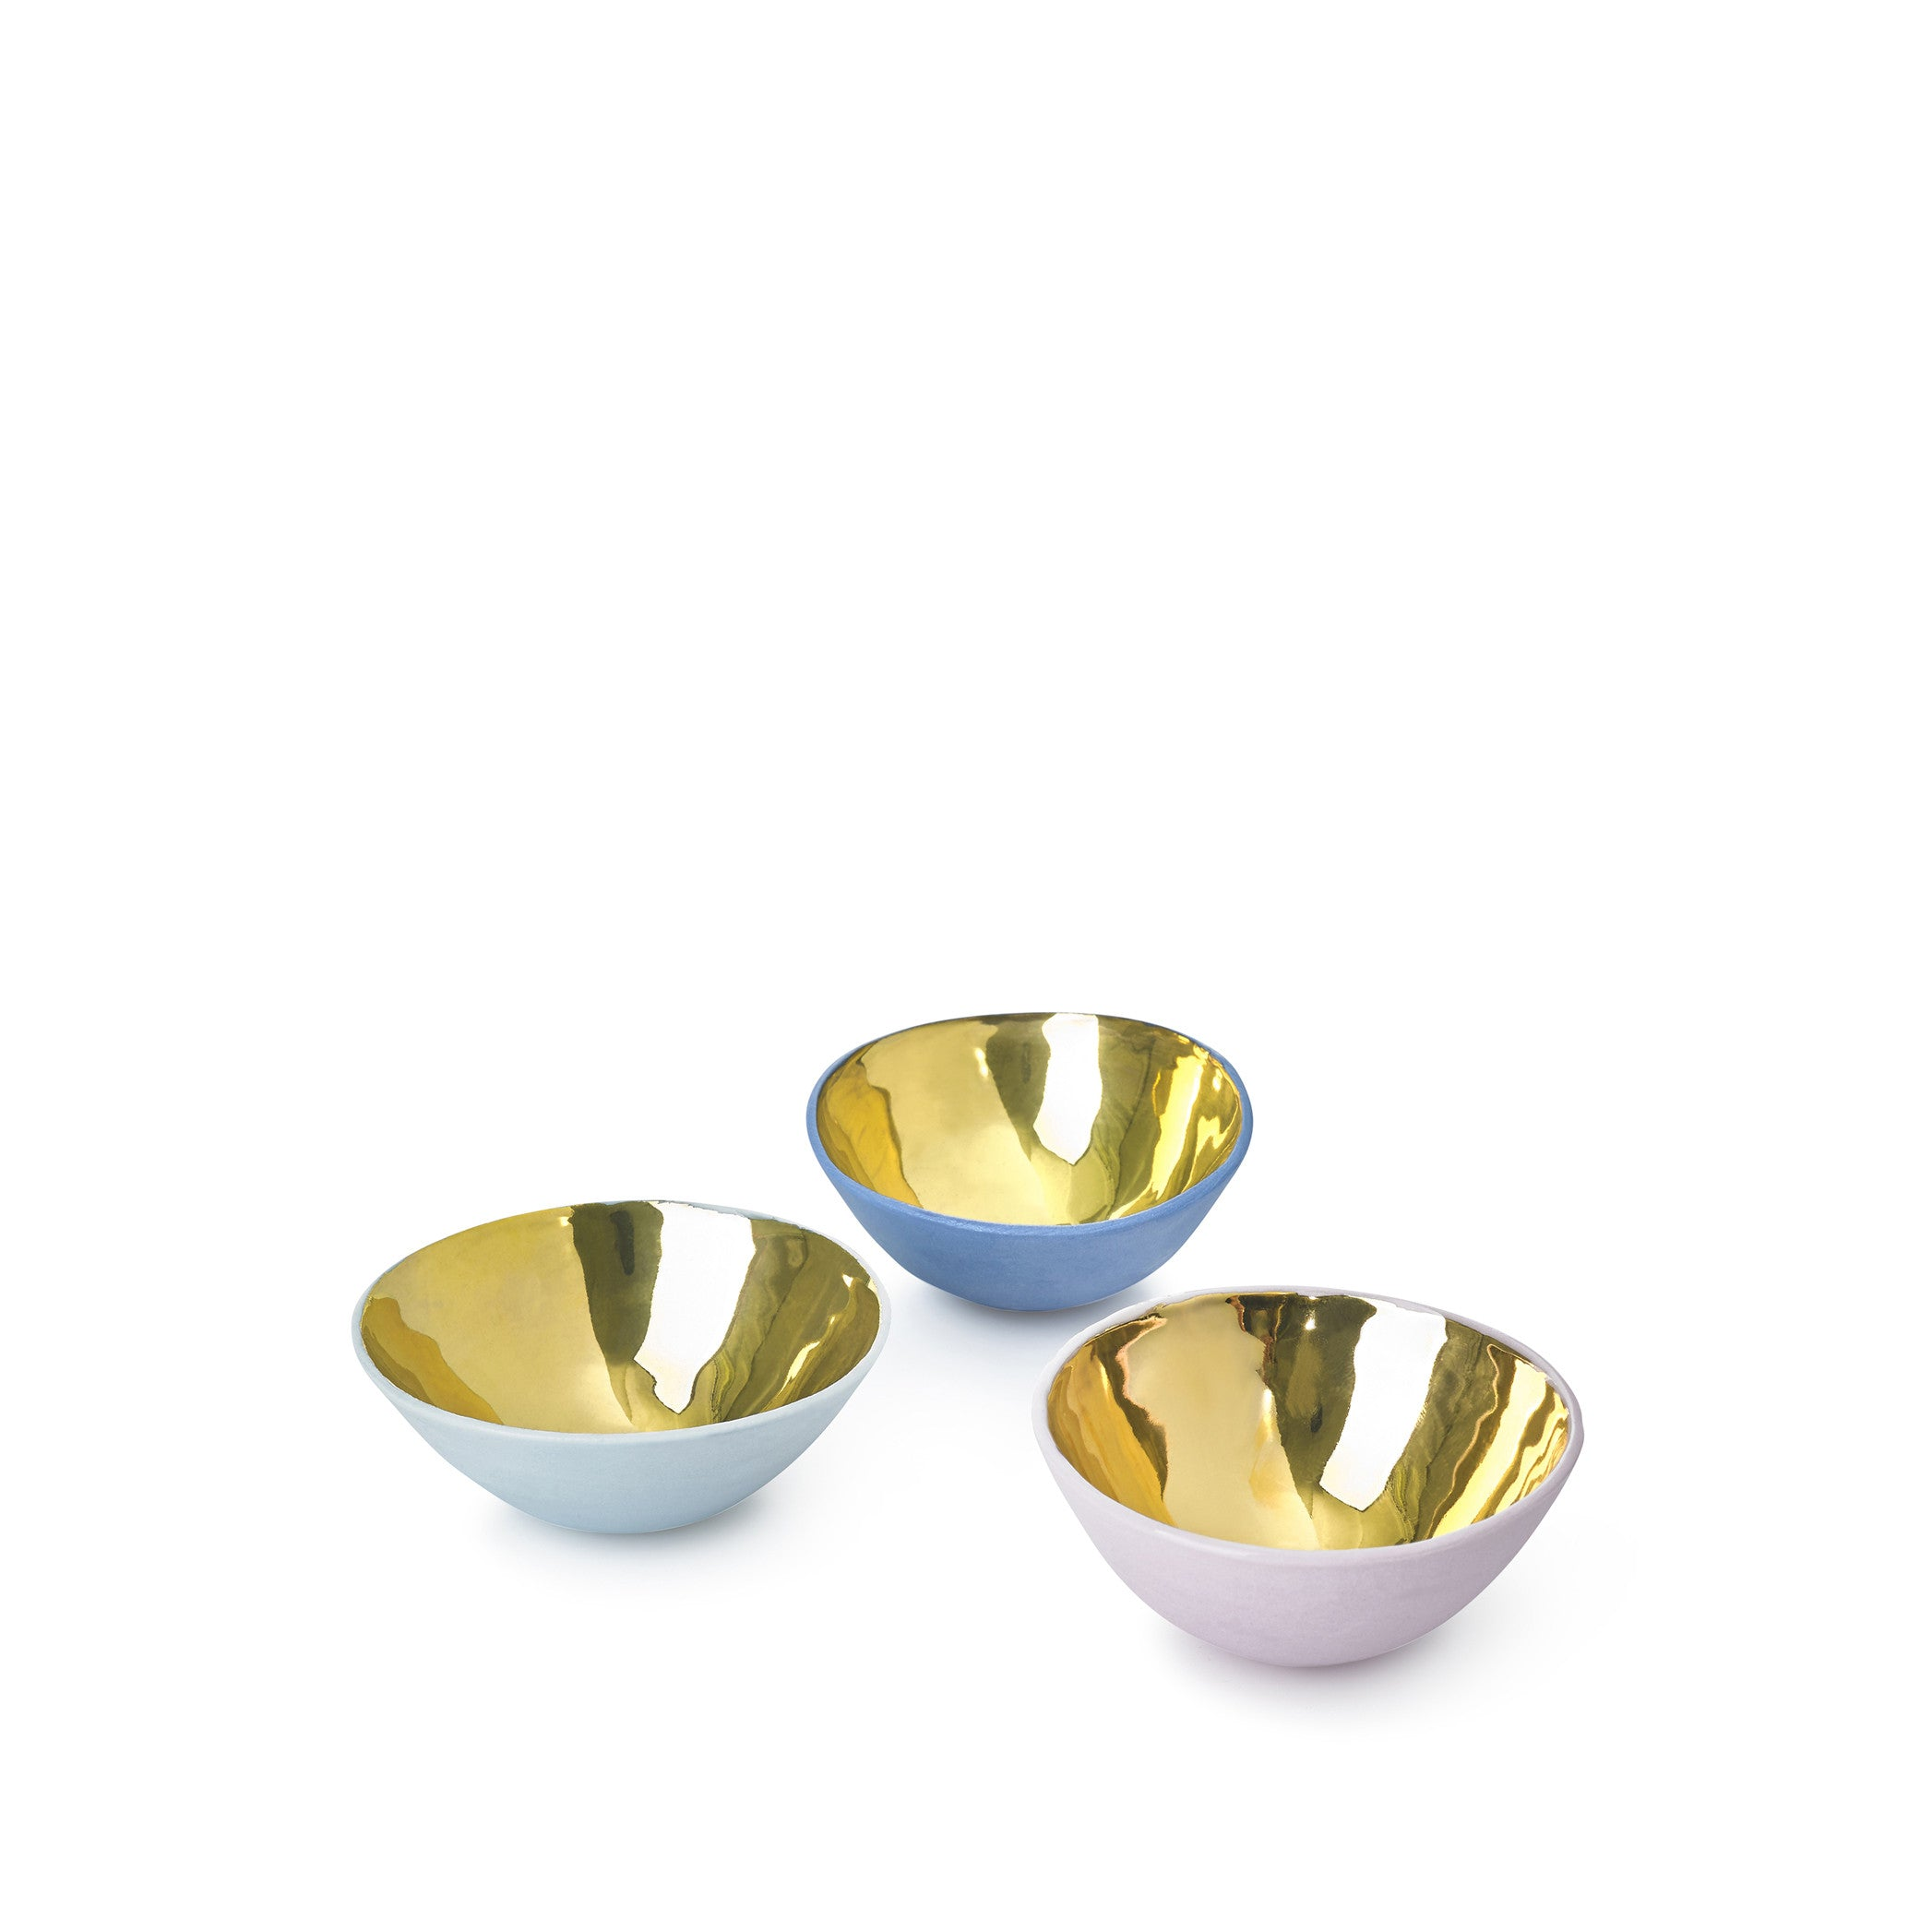 Full Painted Light Blue Ceramic Bowl with Gold Glaze, 6cm